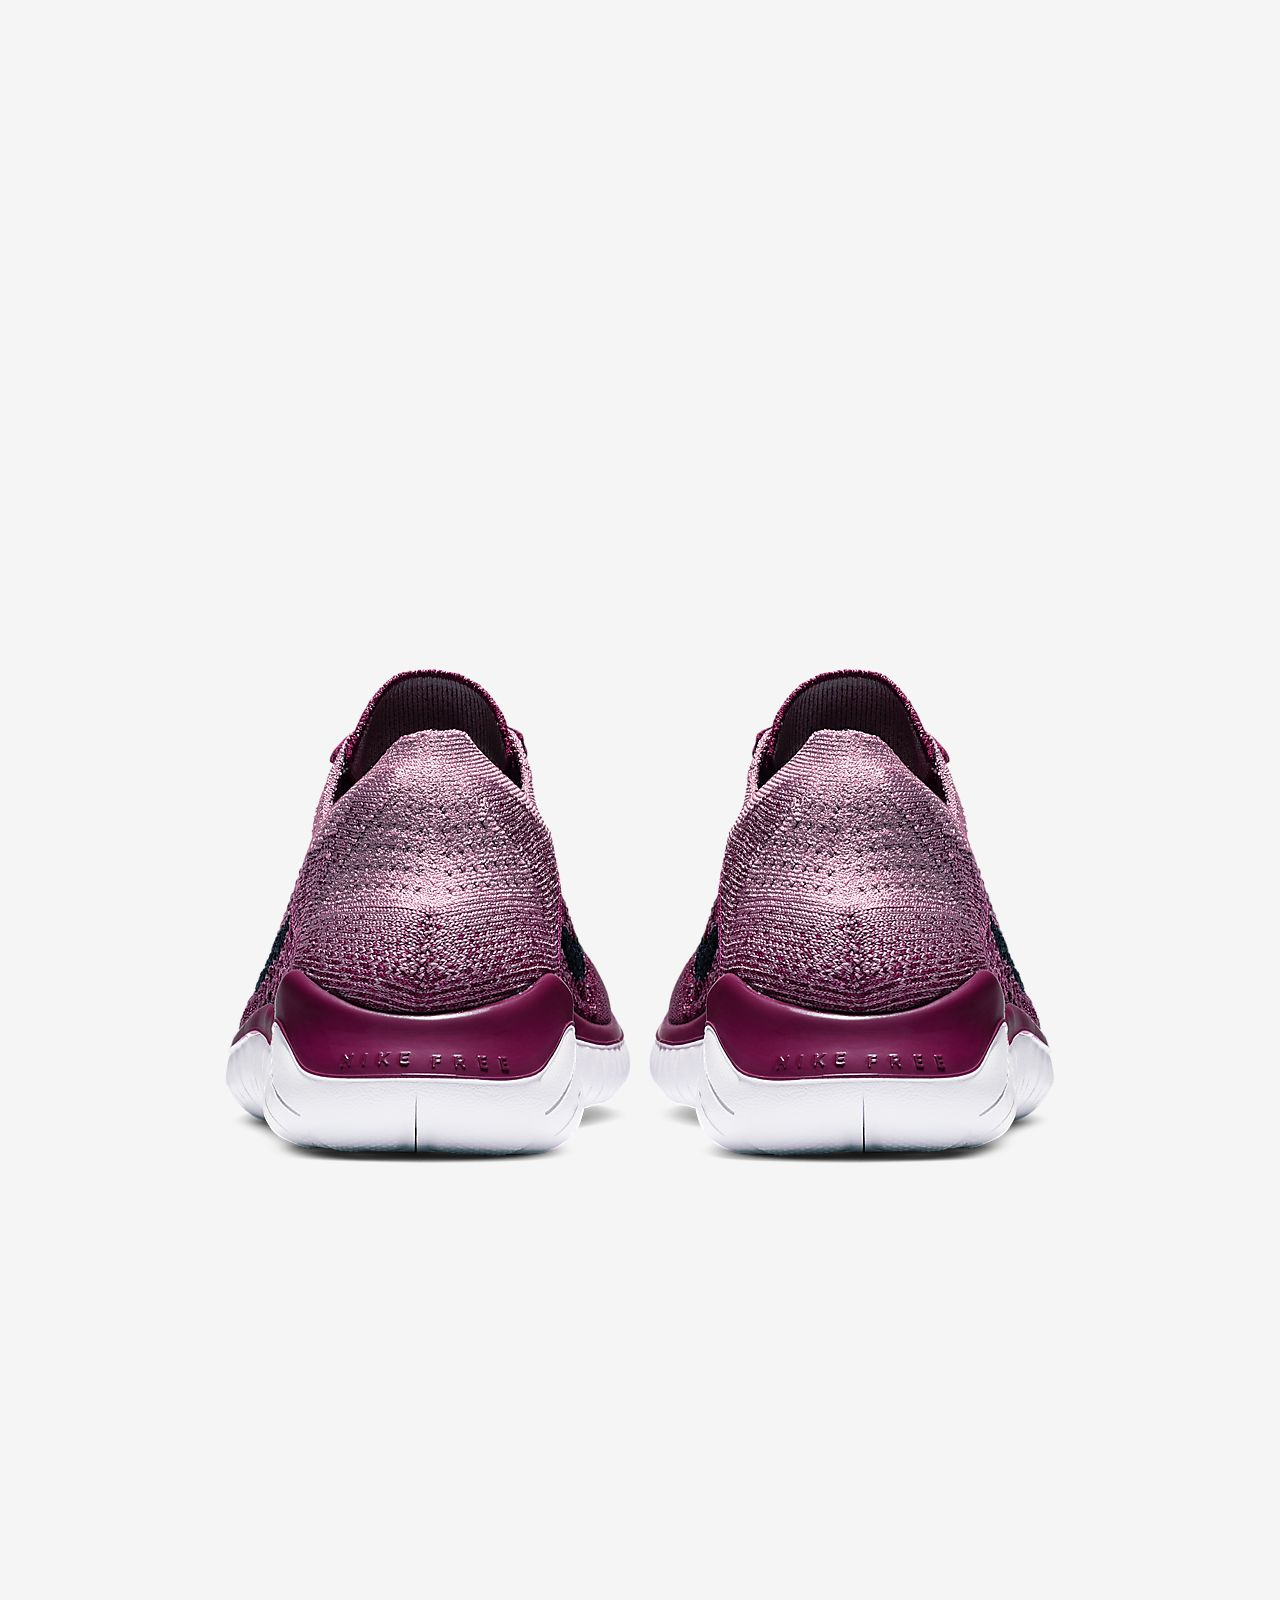 Nike Nike Free RN Flyknit 2018 iD Women's Running Shoe Size 6.5 (White) from NIKE | more